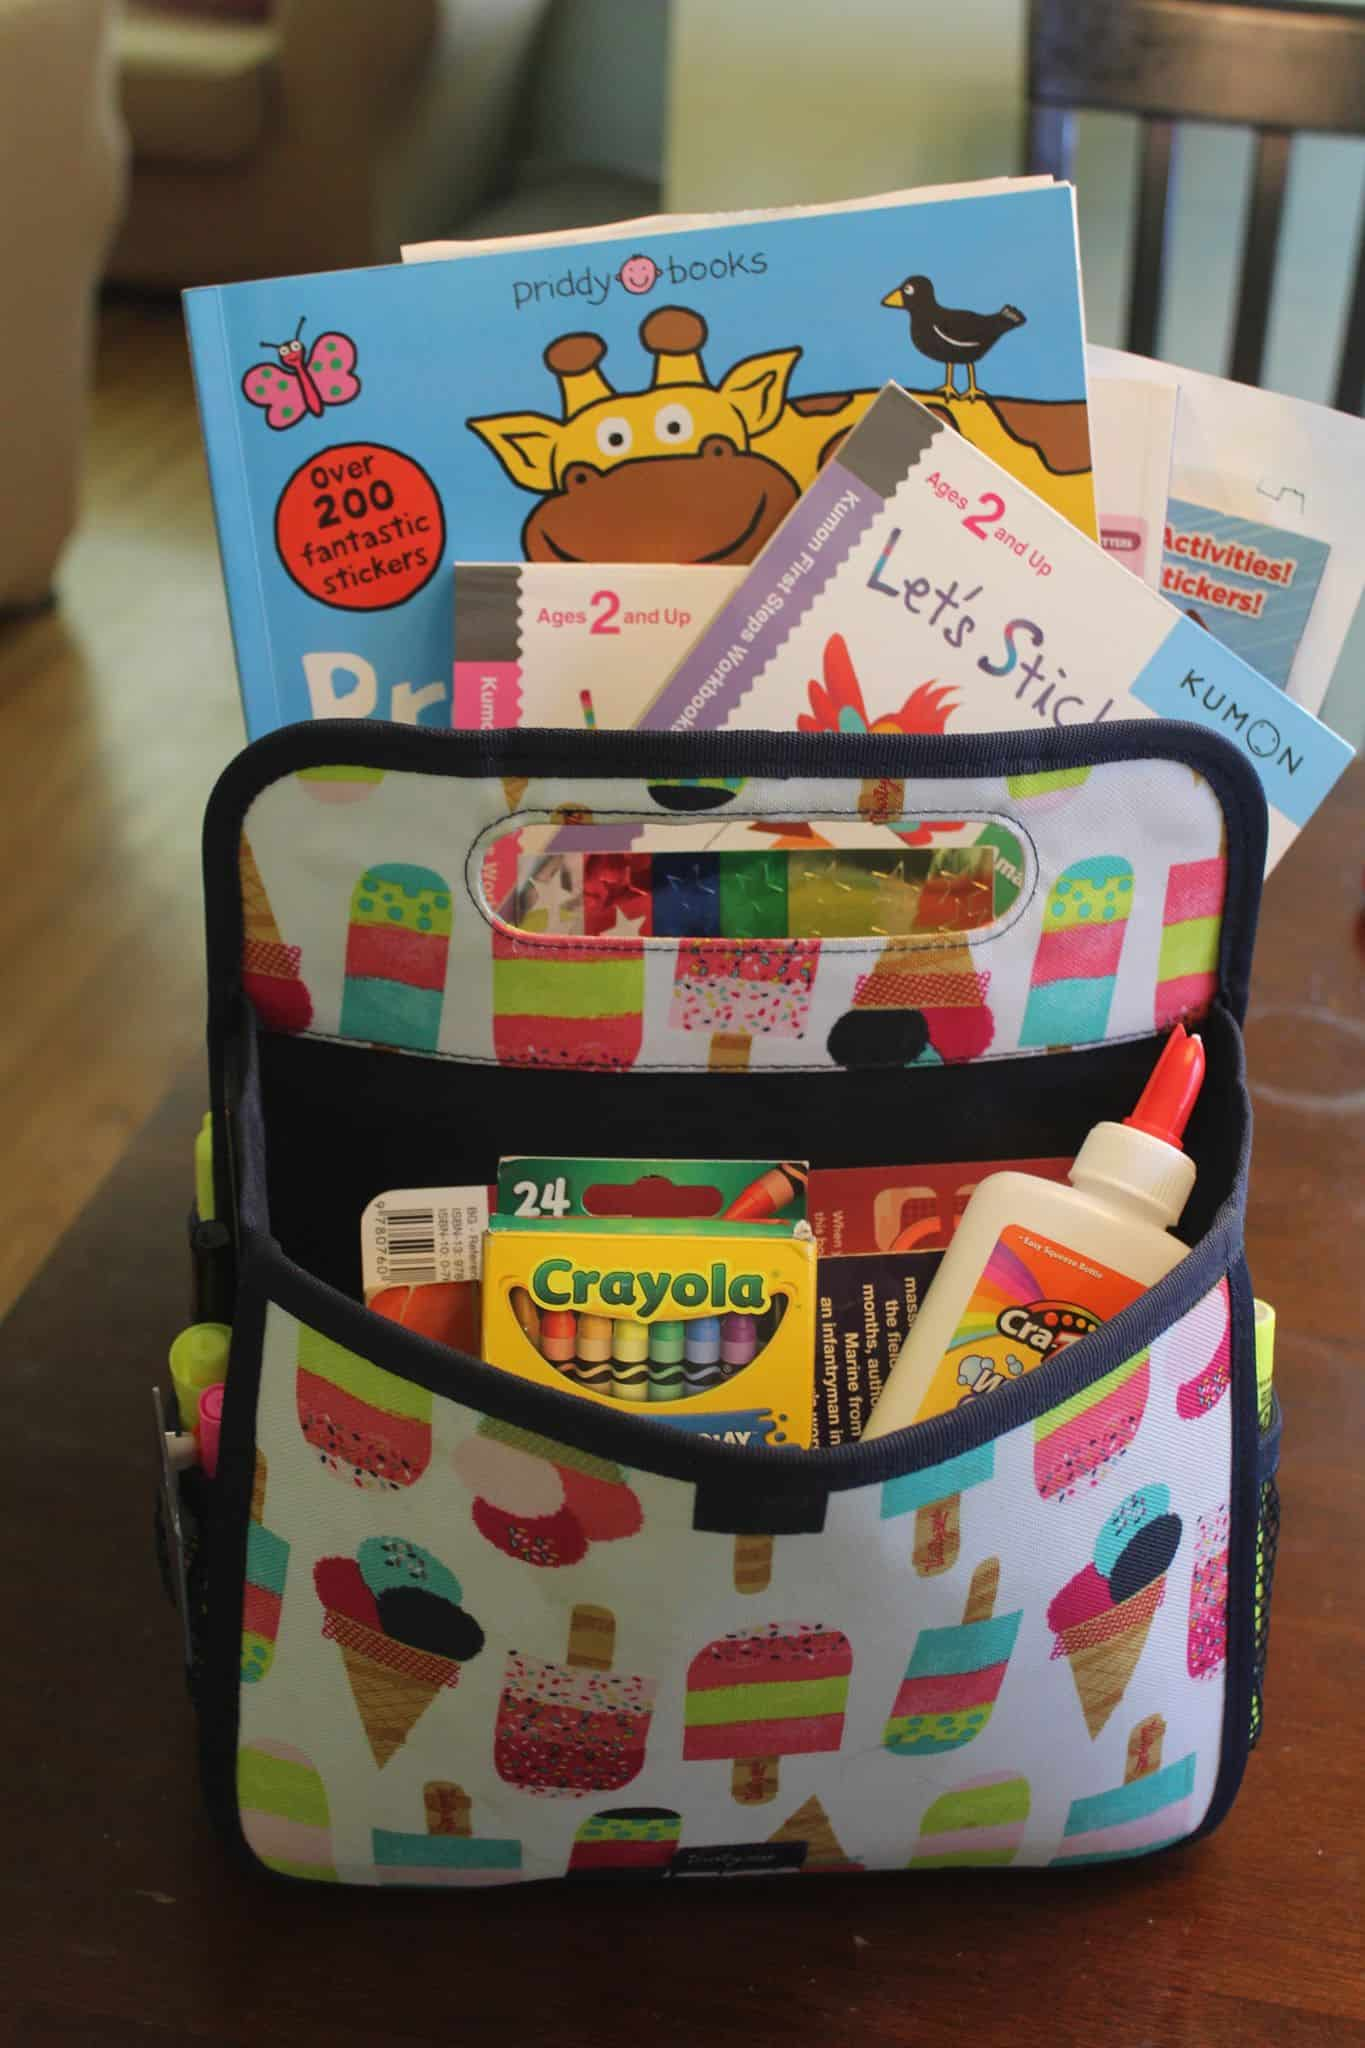 Double duty caddy pack from Thirty-one full of art and fun supplies to keep the kids busy